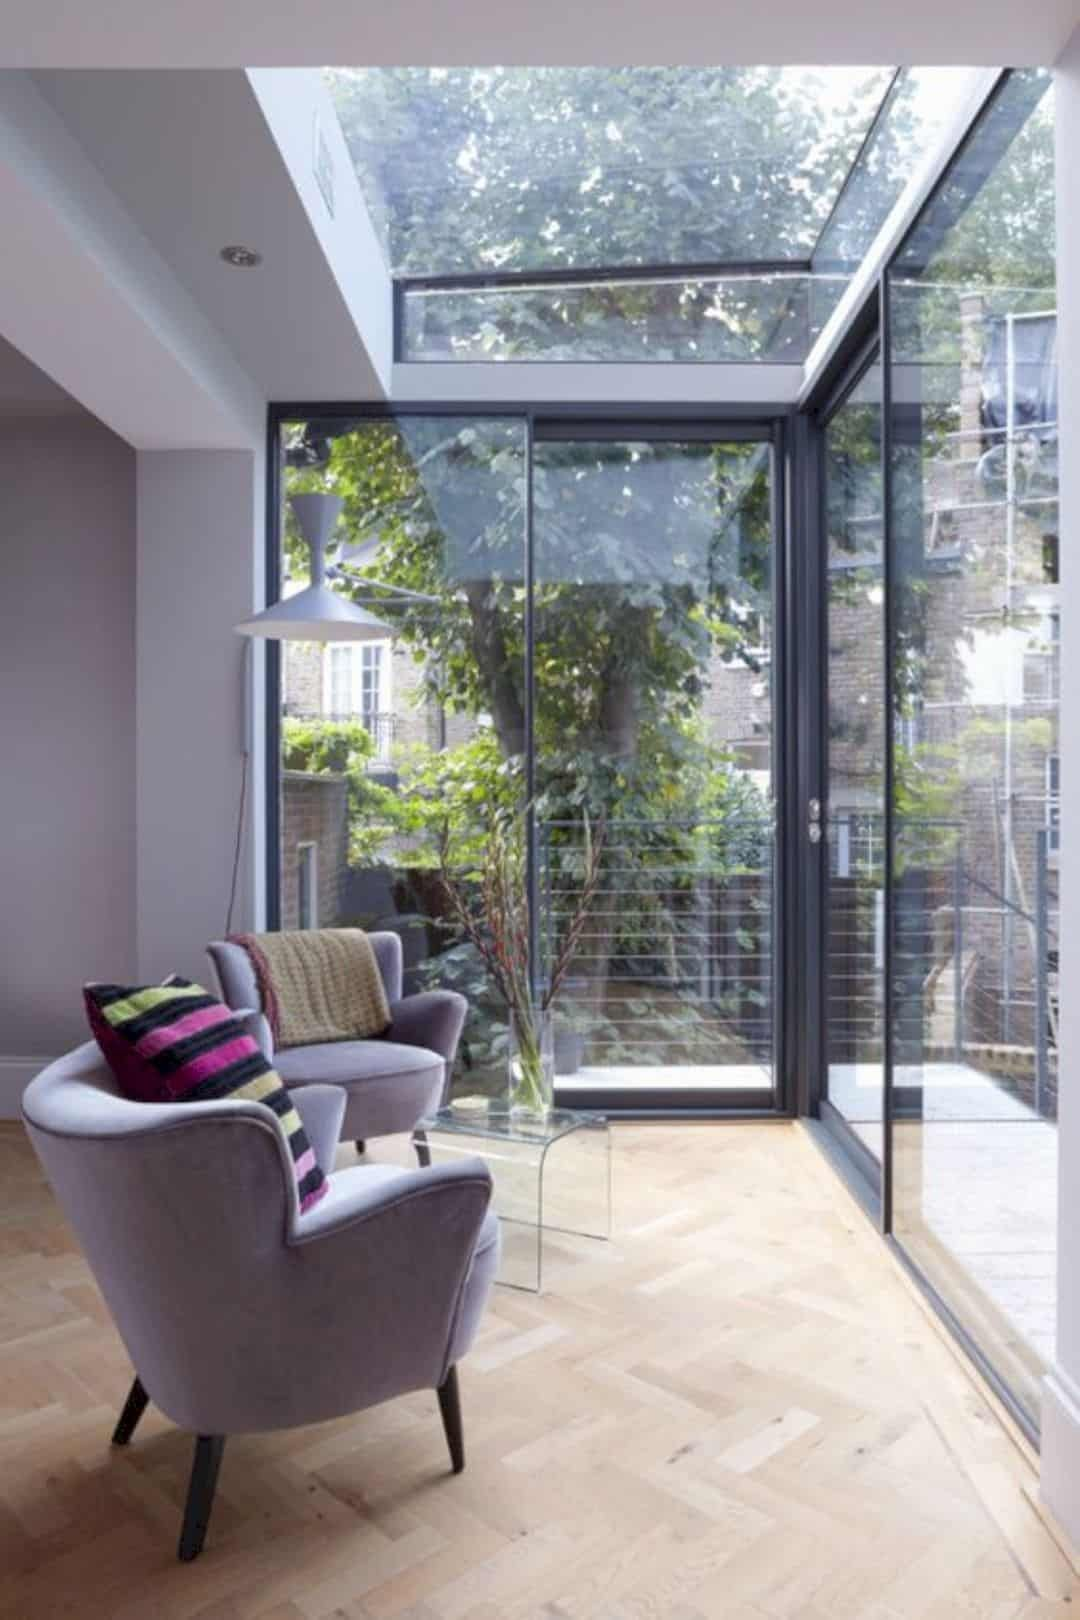 18 Small Conservatory Interior Design Ideas With Images